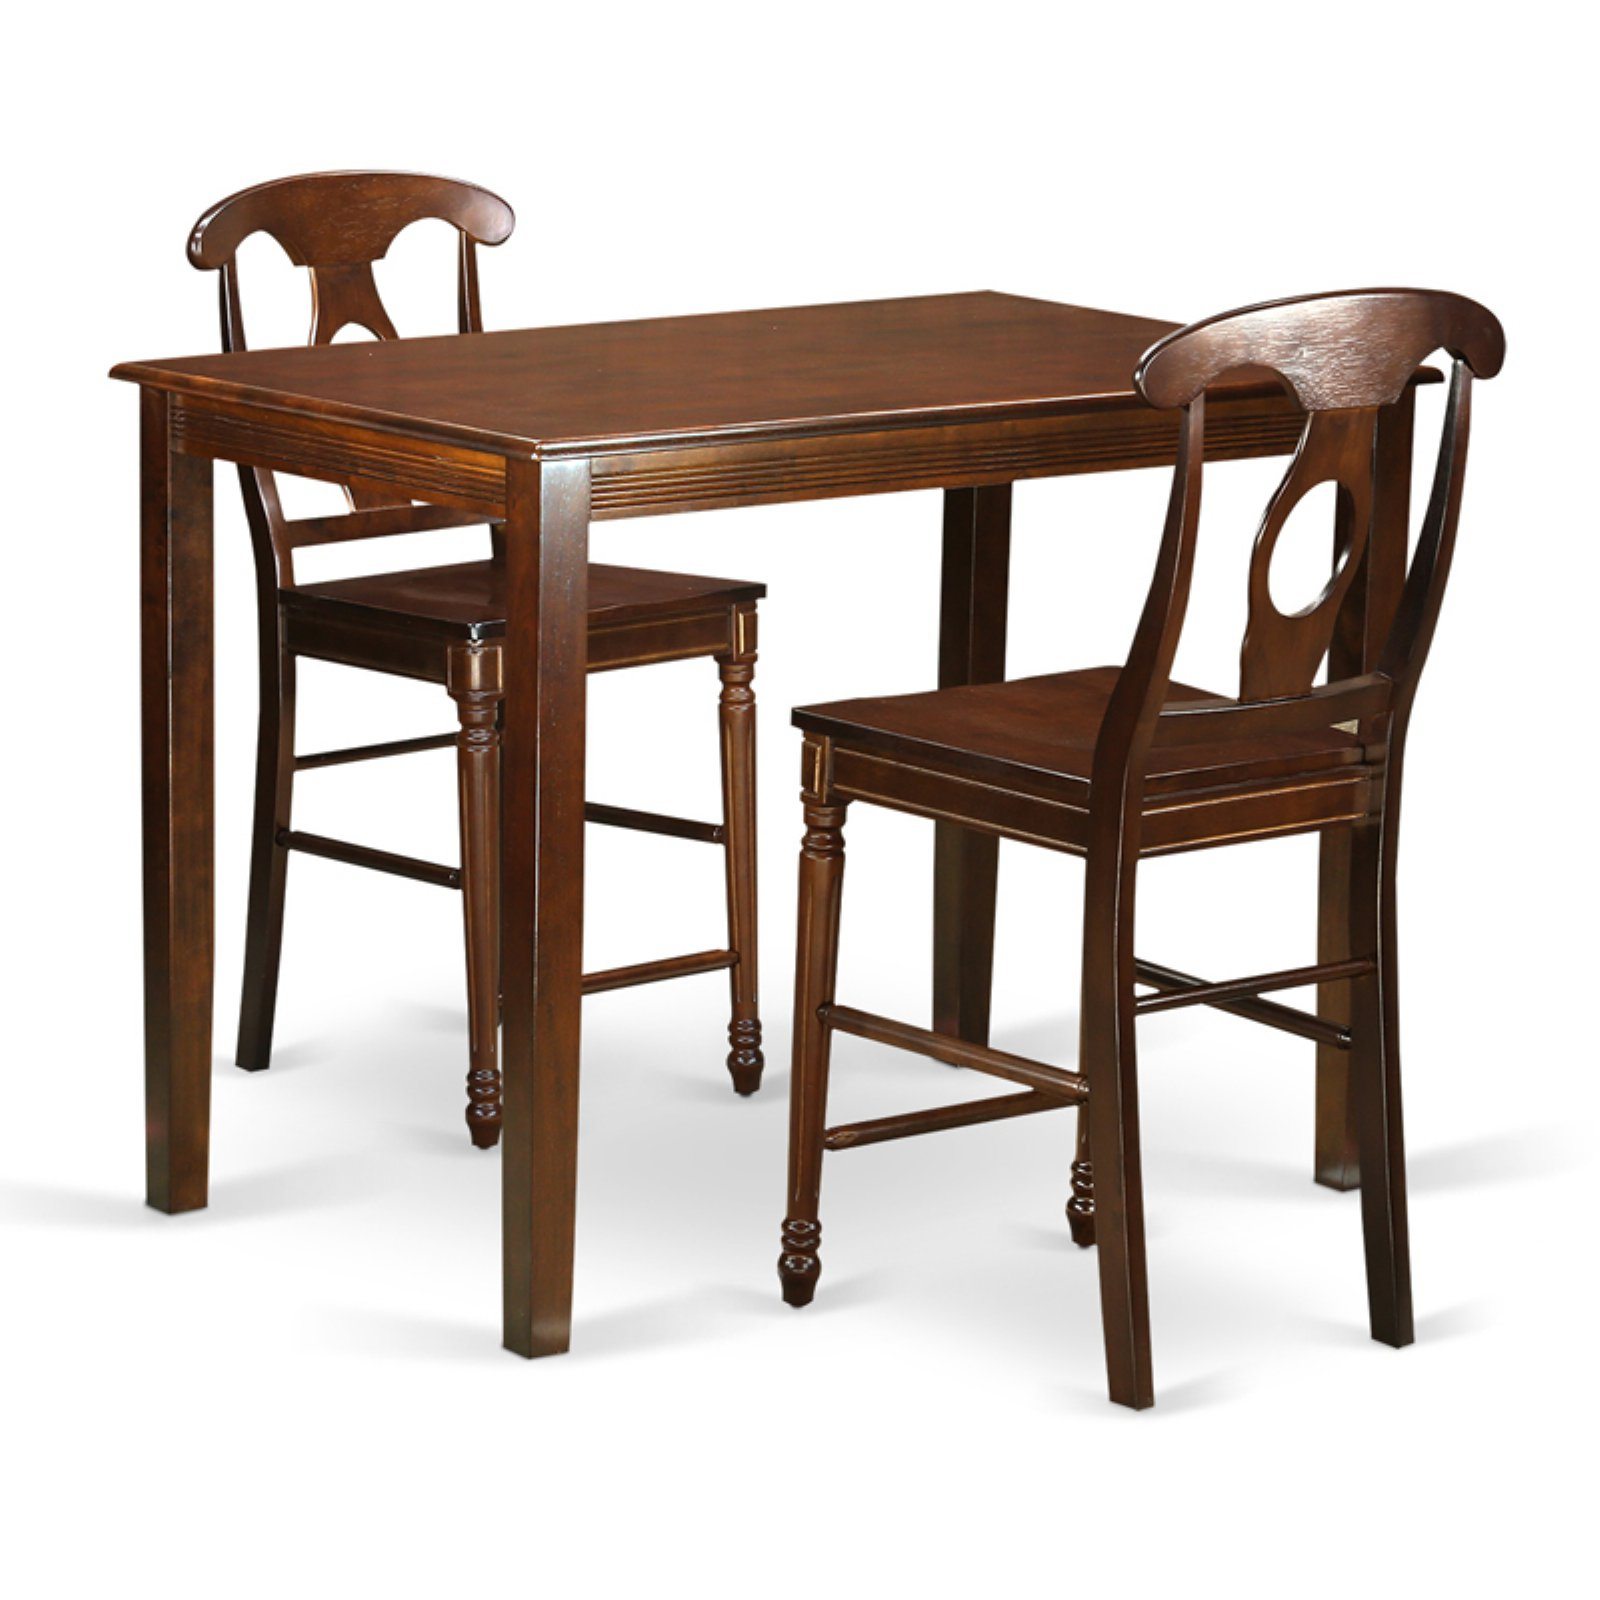 East West Furniture Yarmouth 3 Piece Keyhole Dining Table Set